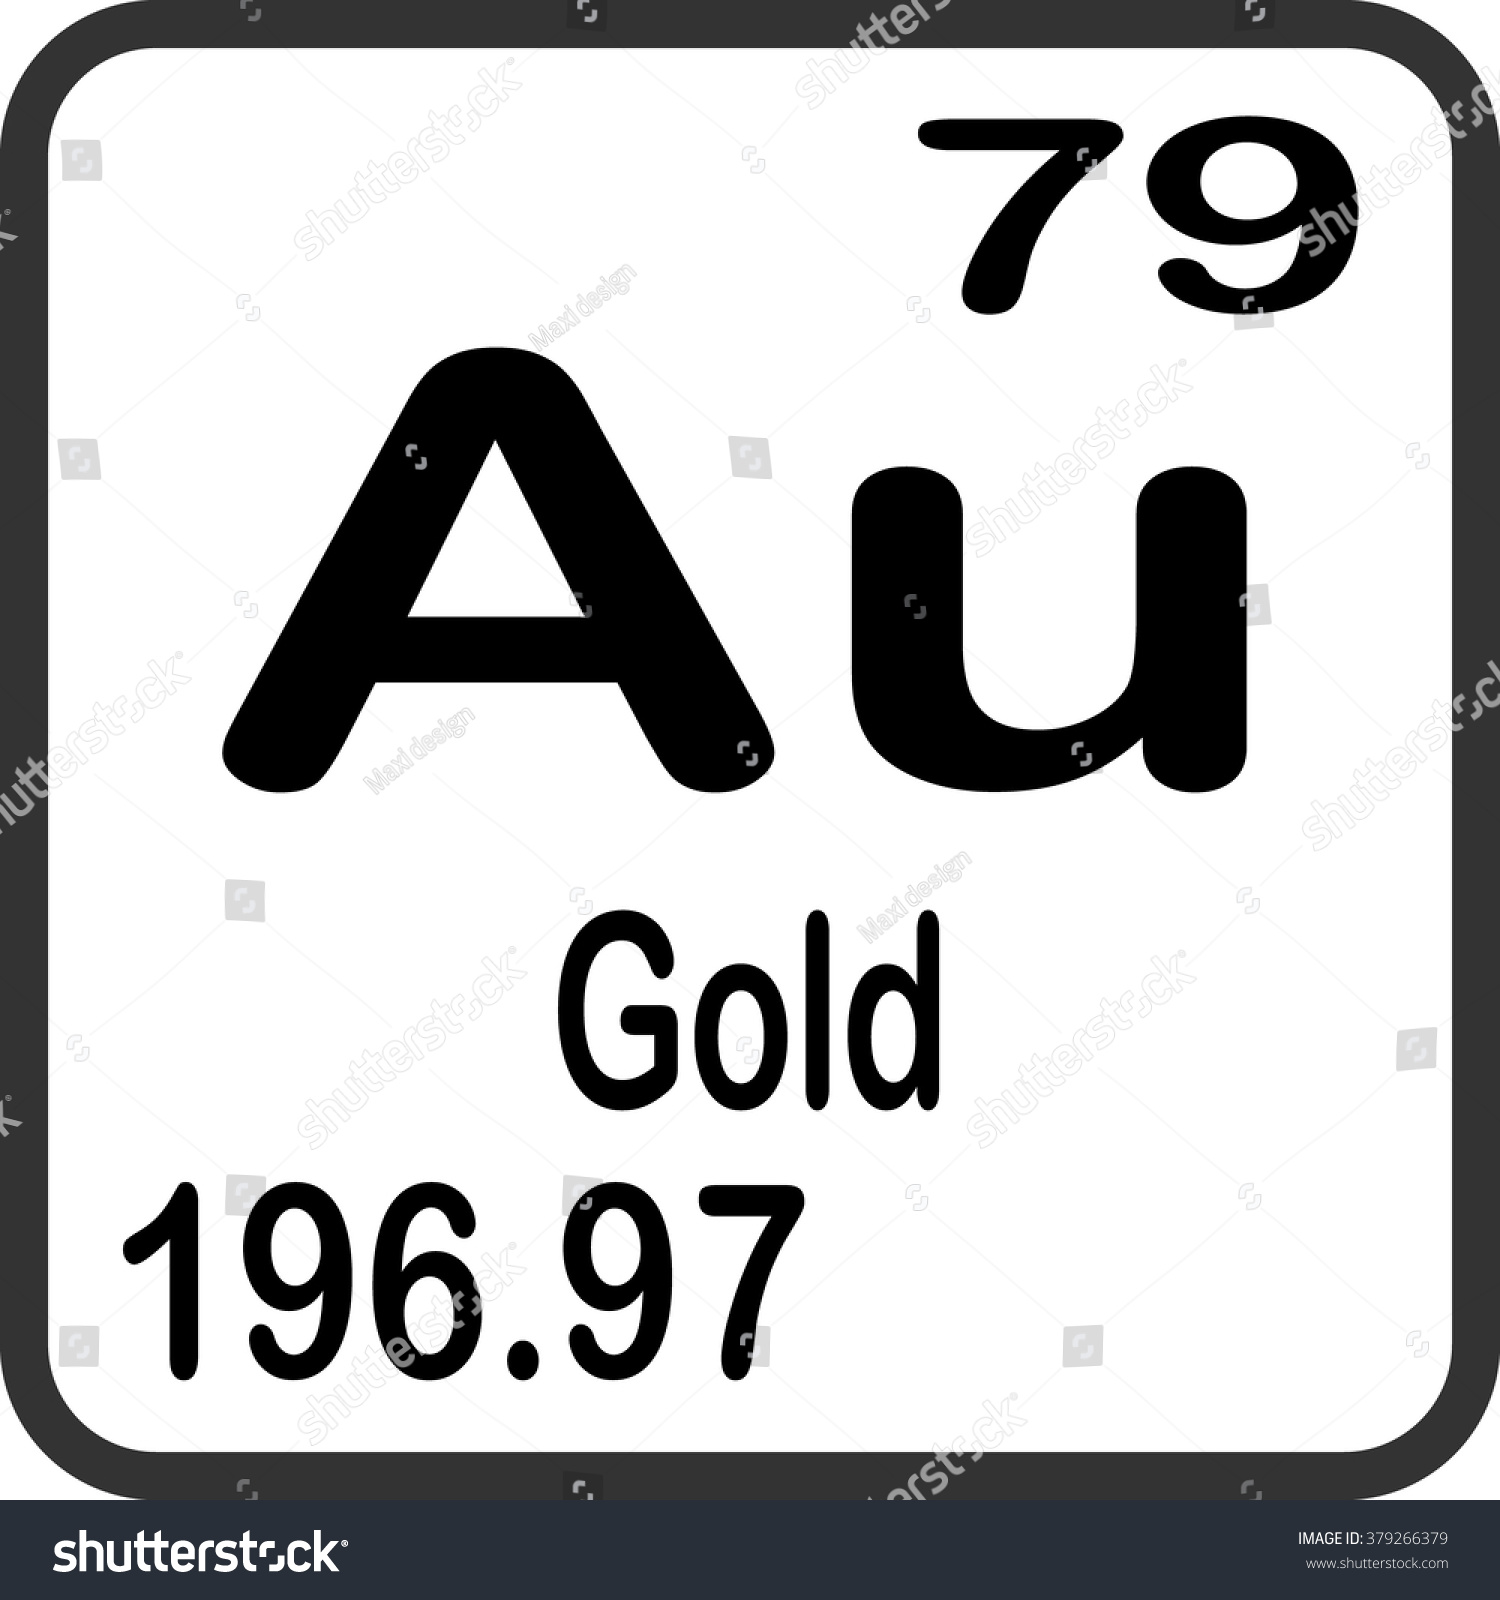 Gold element symbol periodic table choice image periodic table gold element symbol periodic table choice image periodic table gold element symbol periodic table image collections gamestrikefo Choice Image